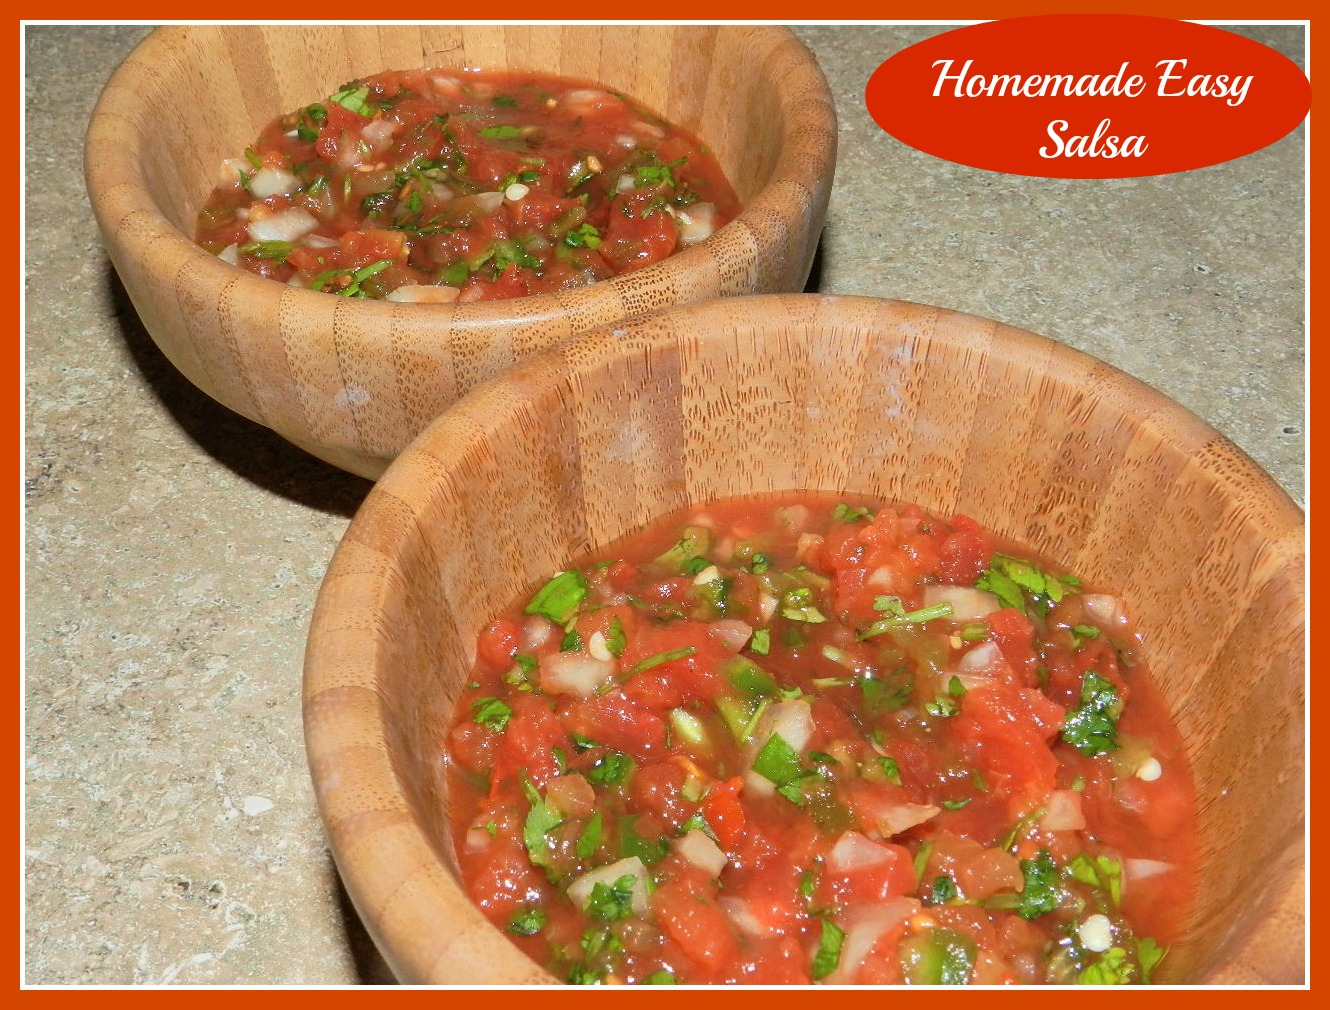 Homemade Easy Salsa